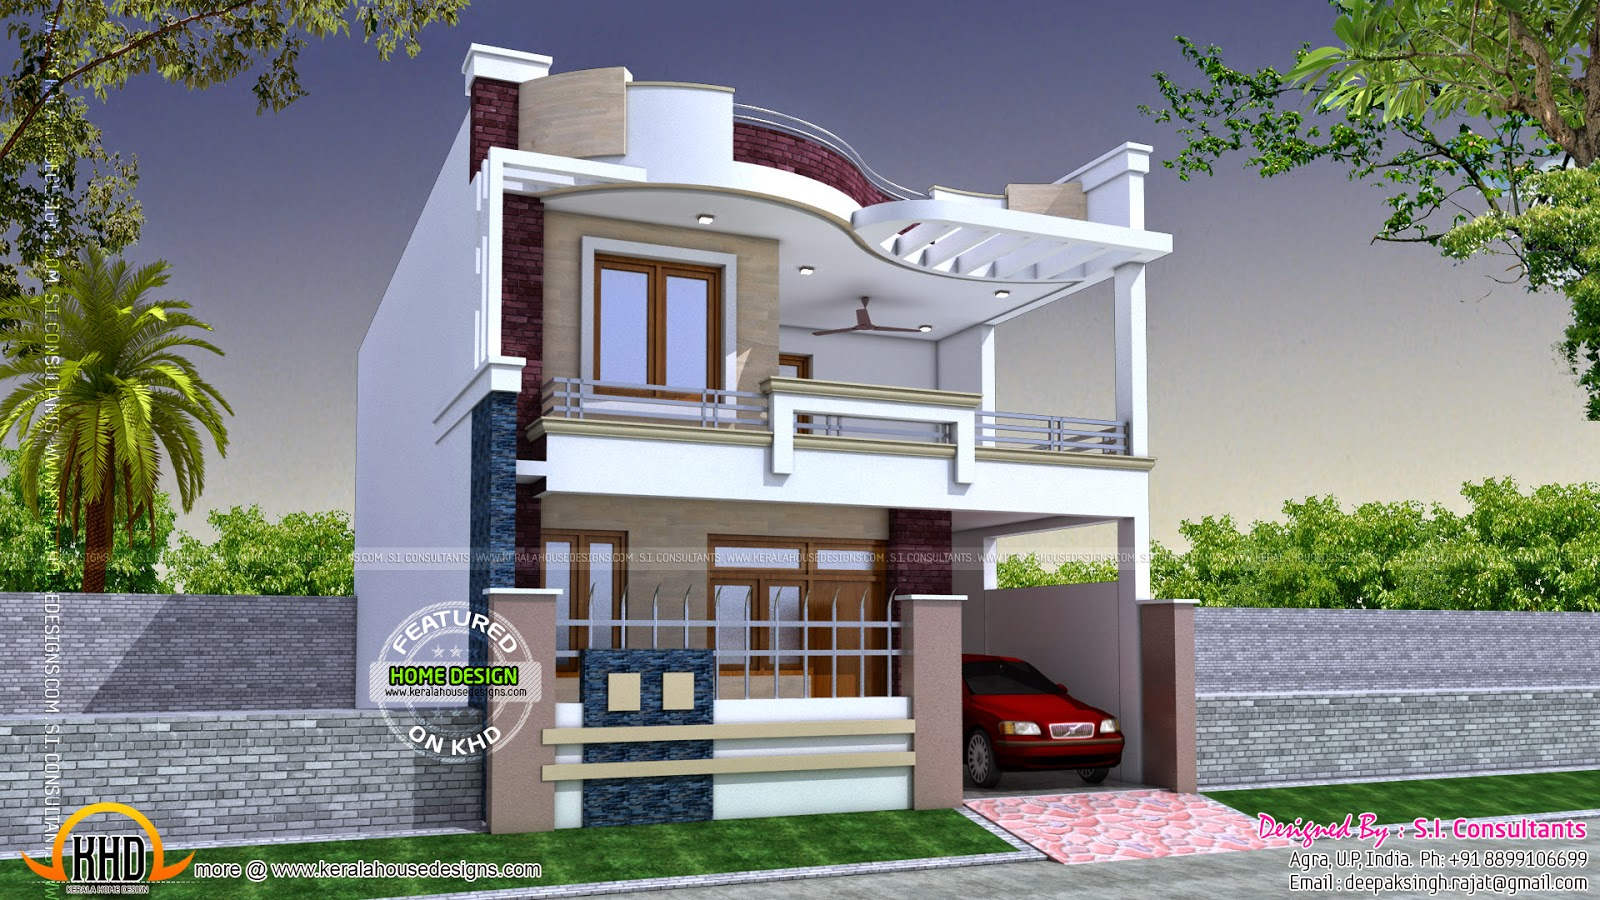 Modern indian home design kerala home design and floor plans for New house design